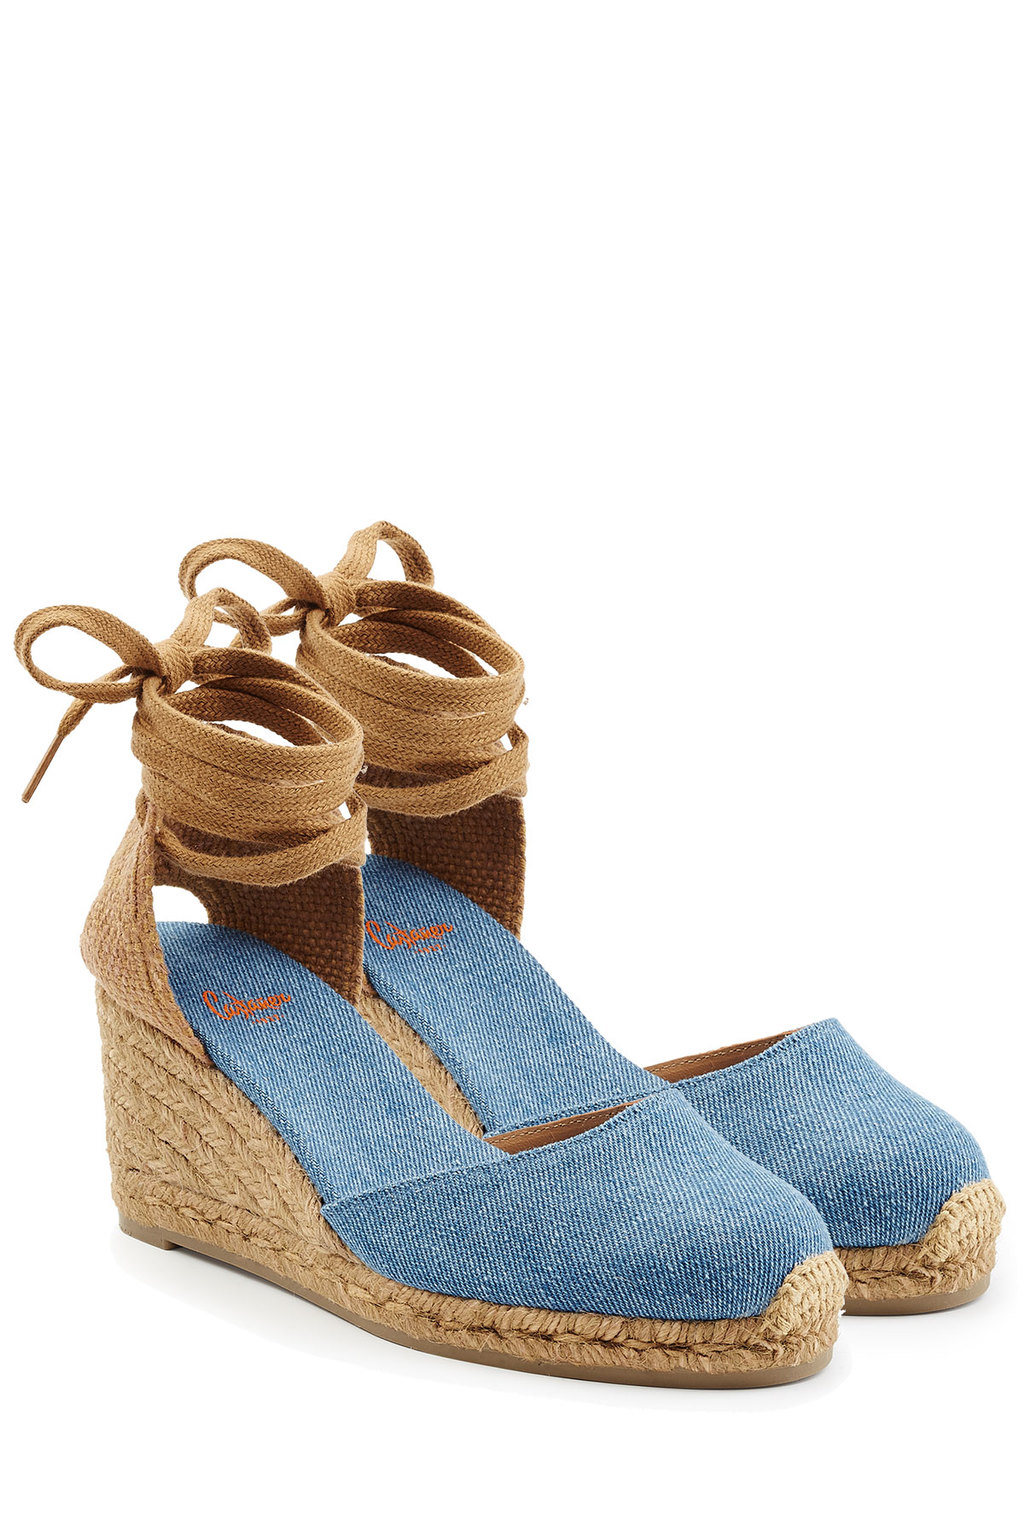 Espadrille Wedges Blue - predominant colour: denim; secondary colour: camel; occasions: casual, holiday; material: fabric; heel height: high; ankle detail: ankle tie; heel: wedge; toe: round toe; finish: plain; pattern: colourblock; shoe detail: platform; style: espadrilles; season: s/s 2016